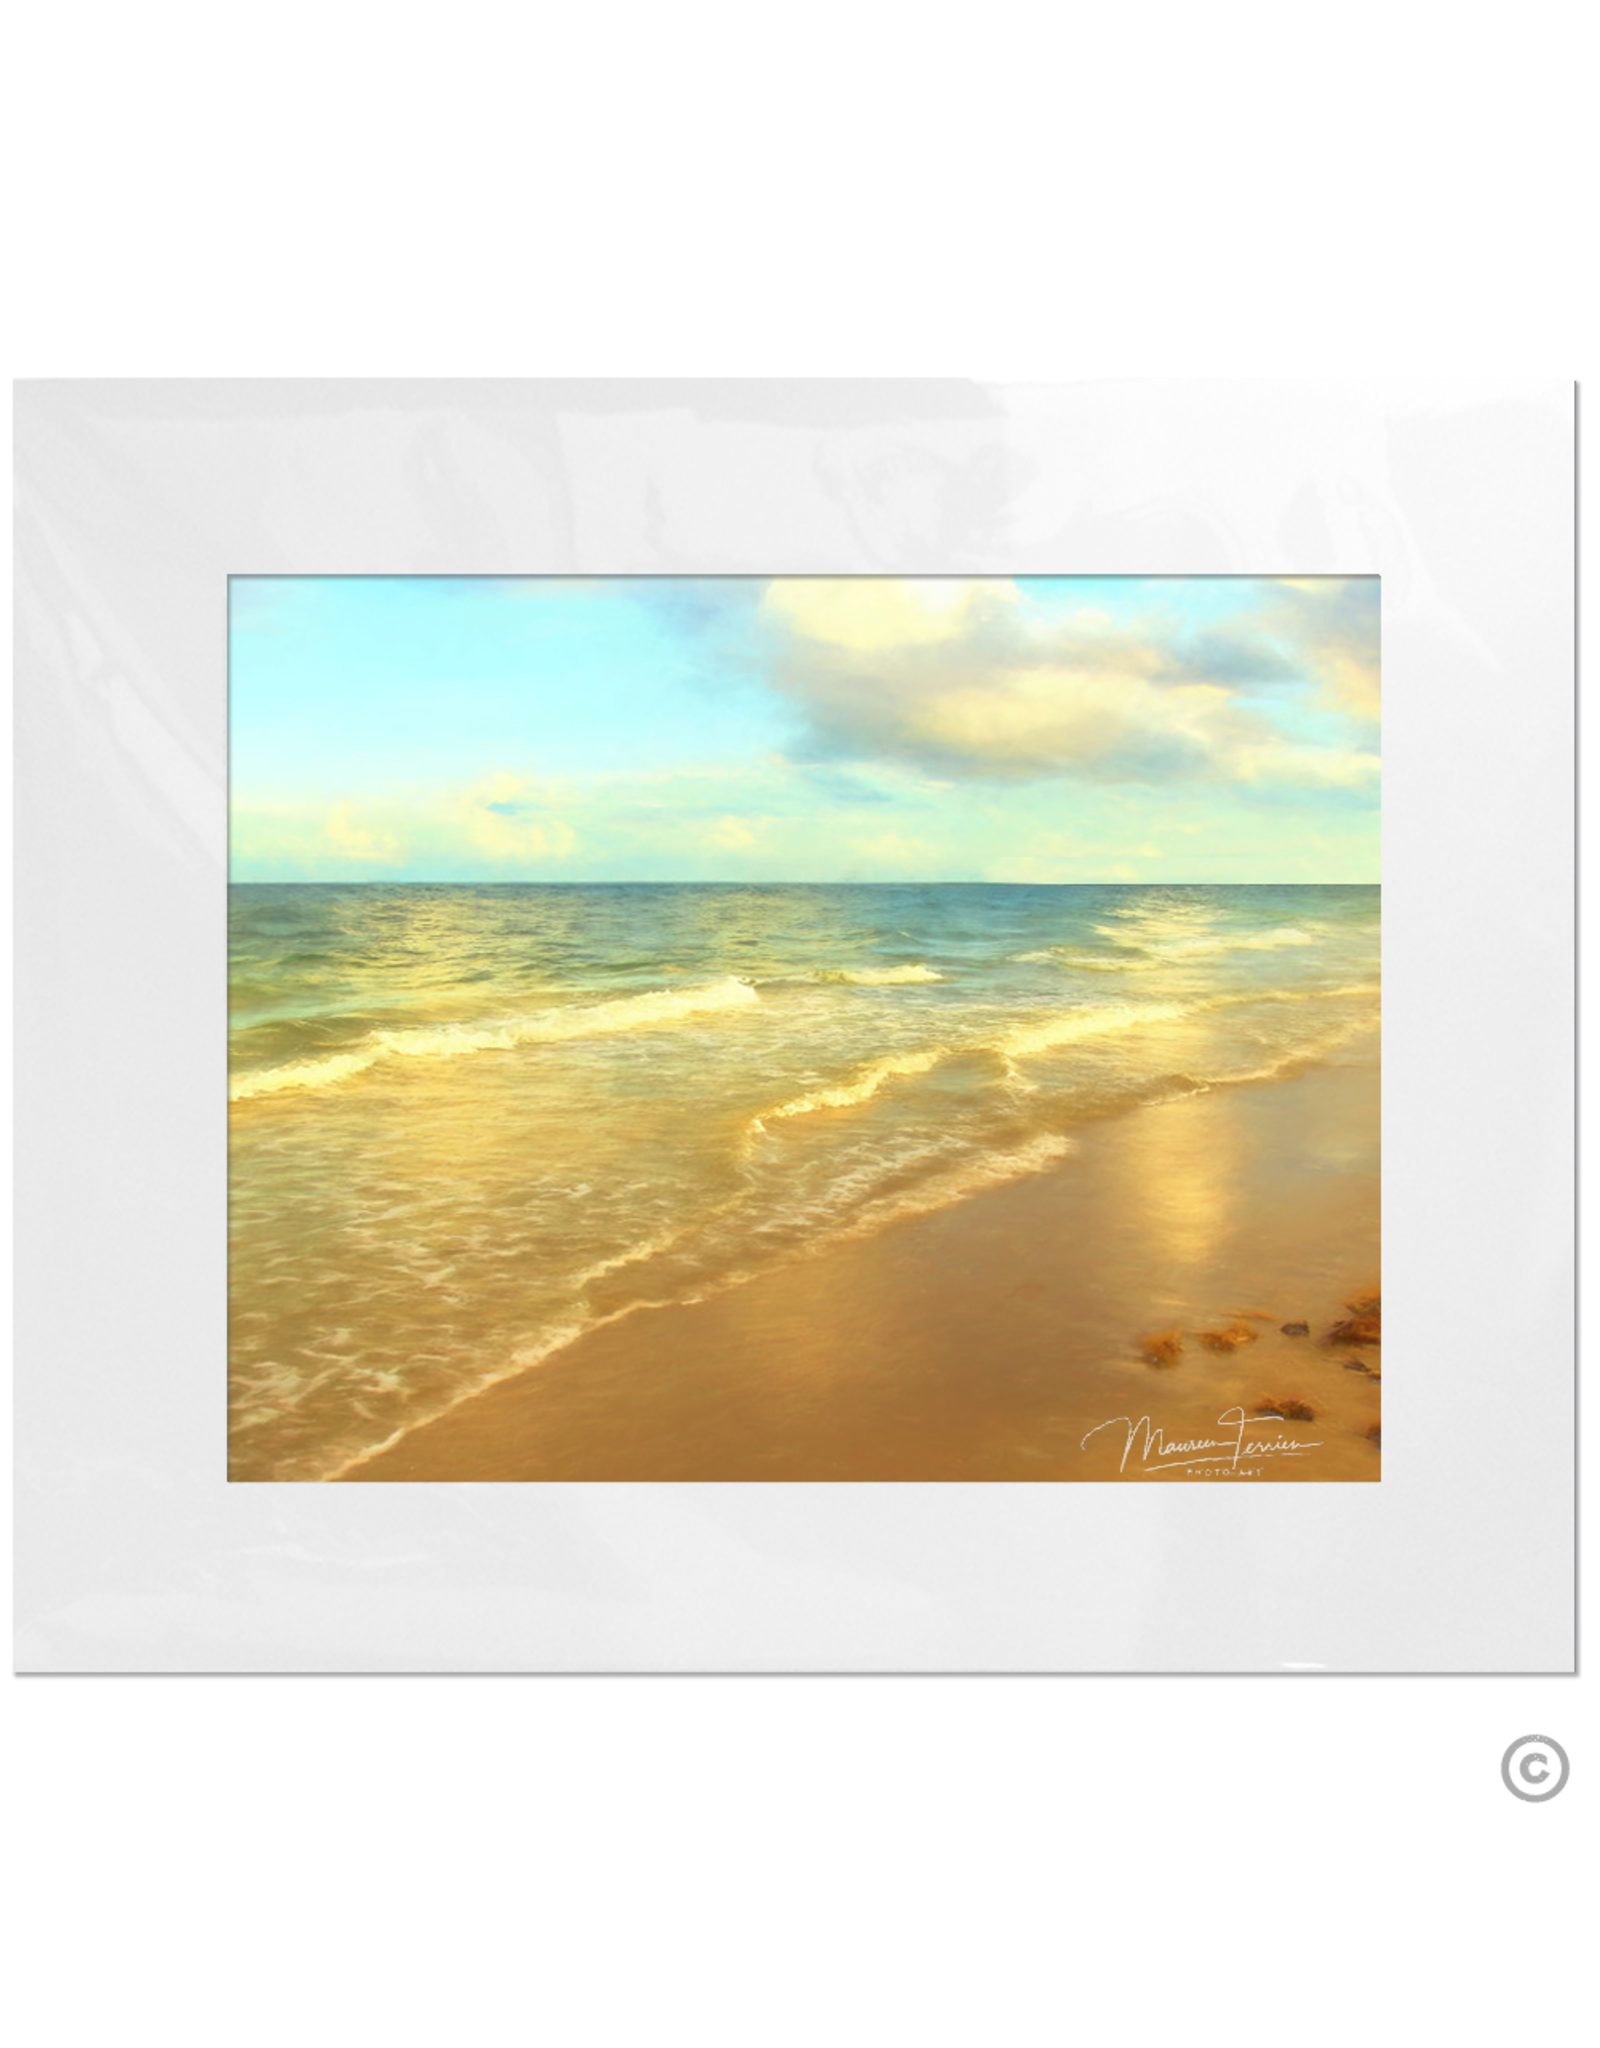 Maureen Terrien Photography Art Print Beach 11x14 - 16x20 Matted